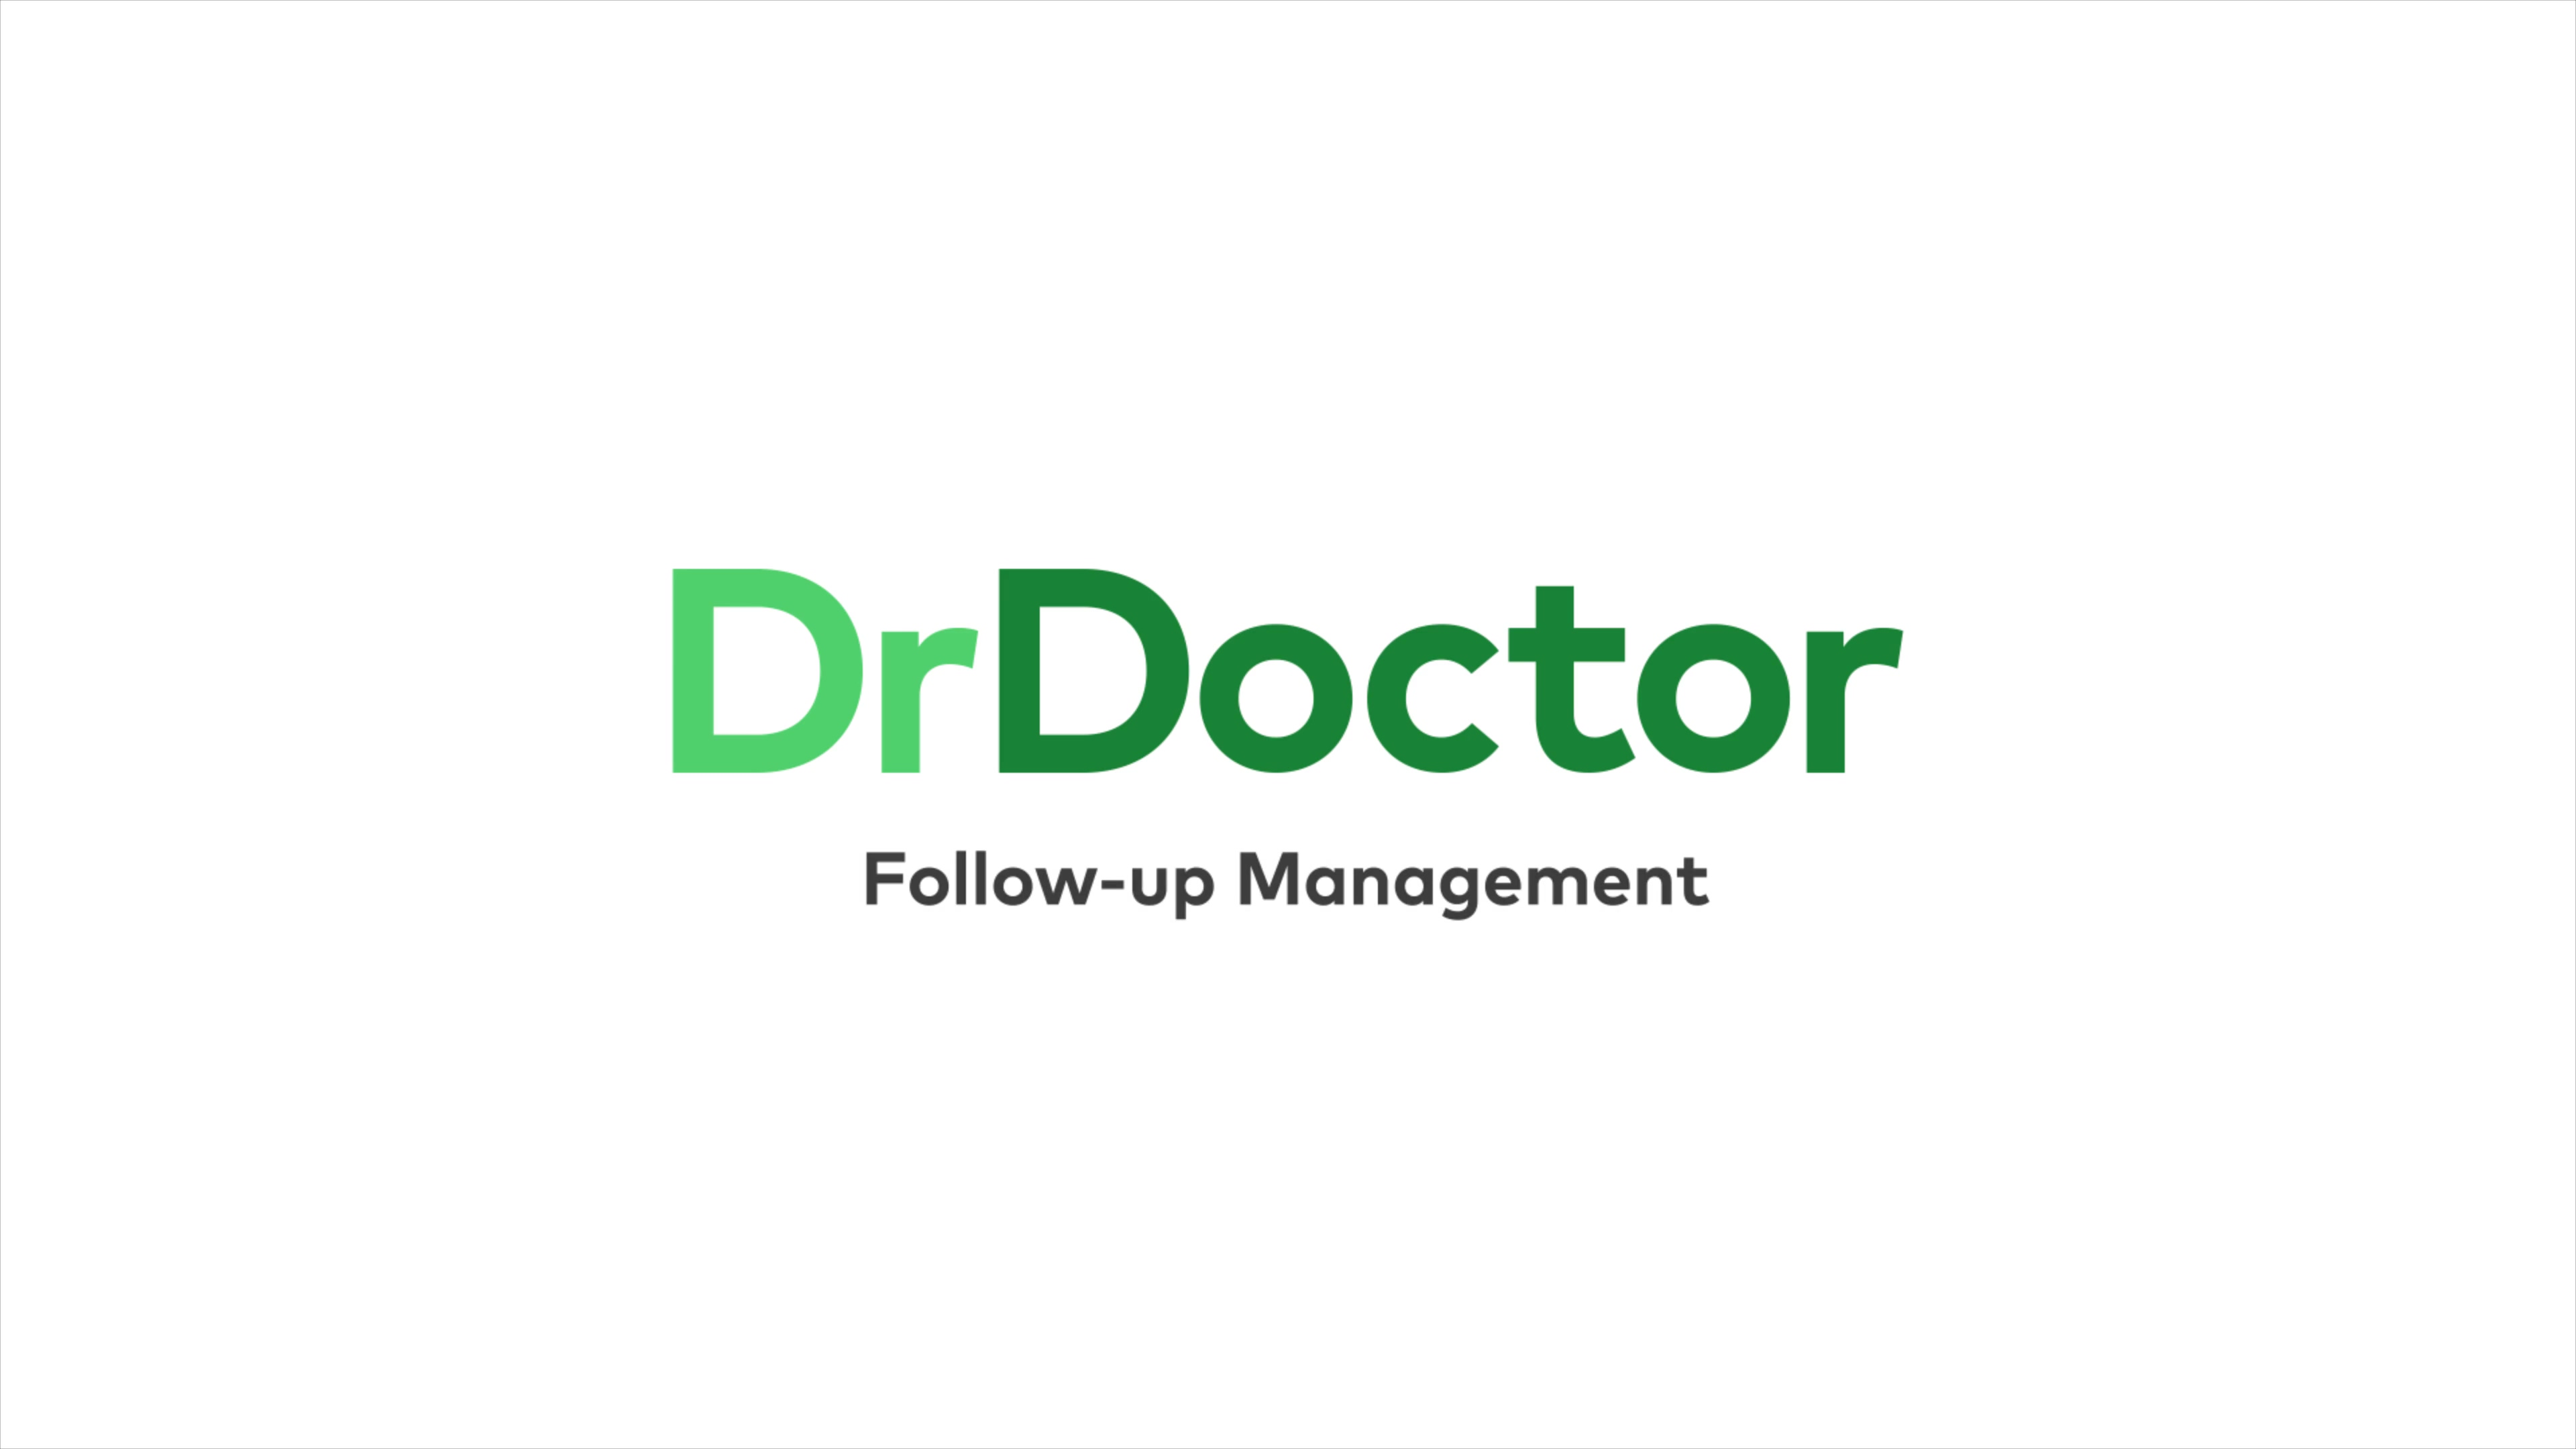 Follow-up Management by DrDoctor